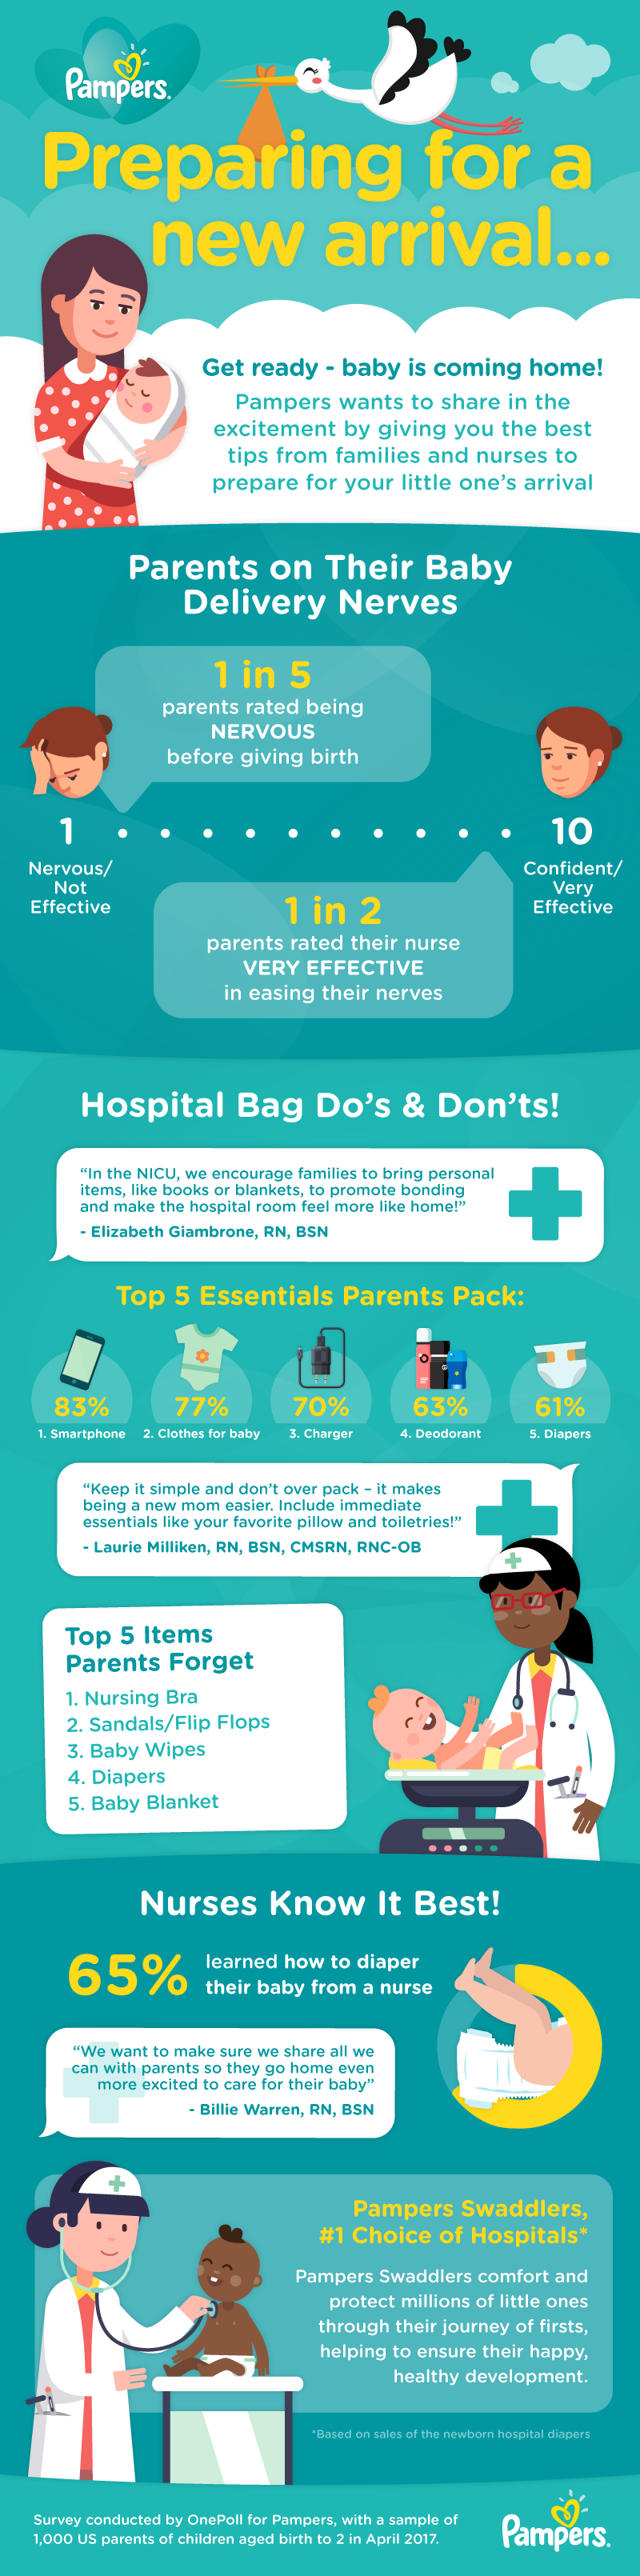 Pampers Infographic